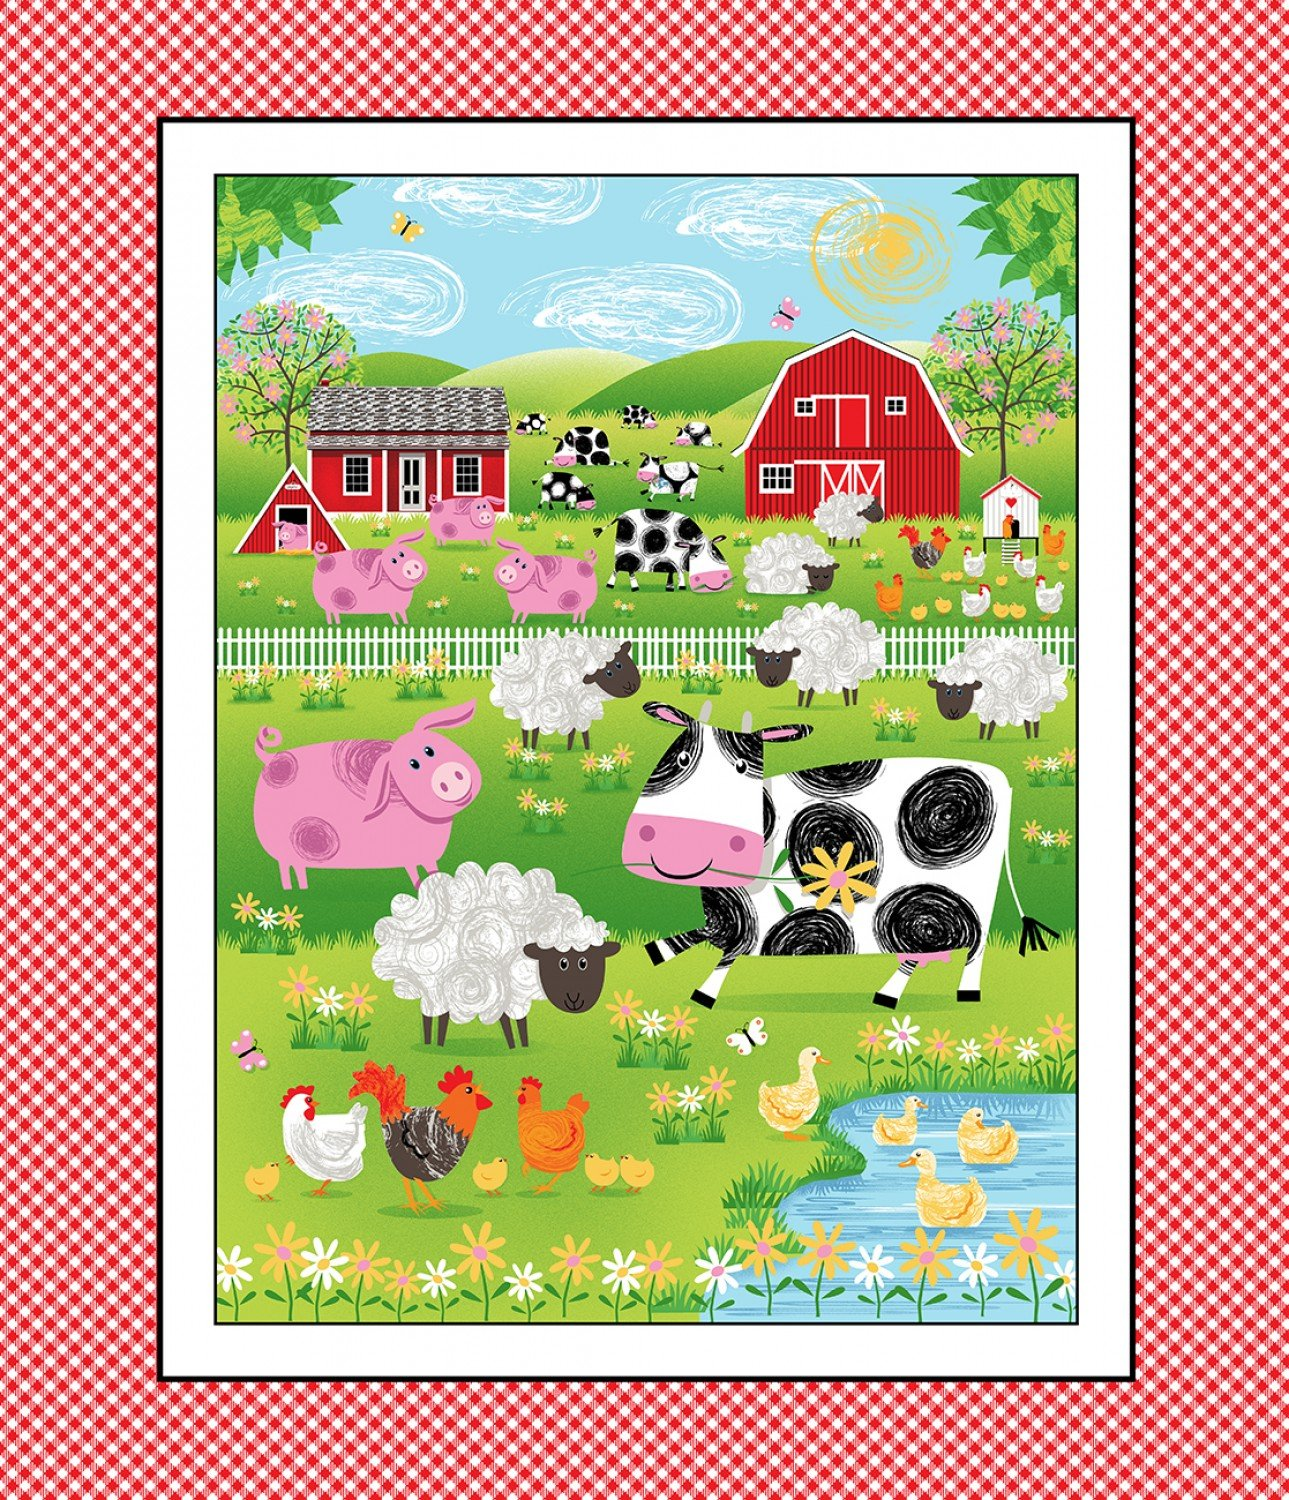 Best Friends Children's Cotton Barnyard Fabric Panel 36 x 44 Inches